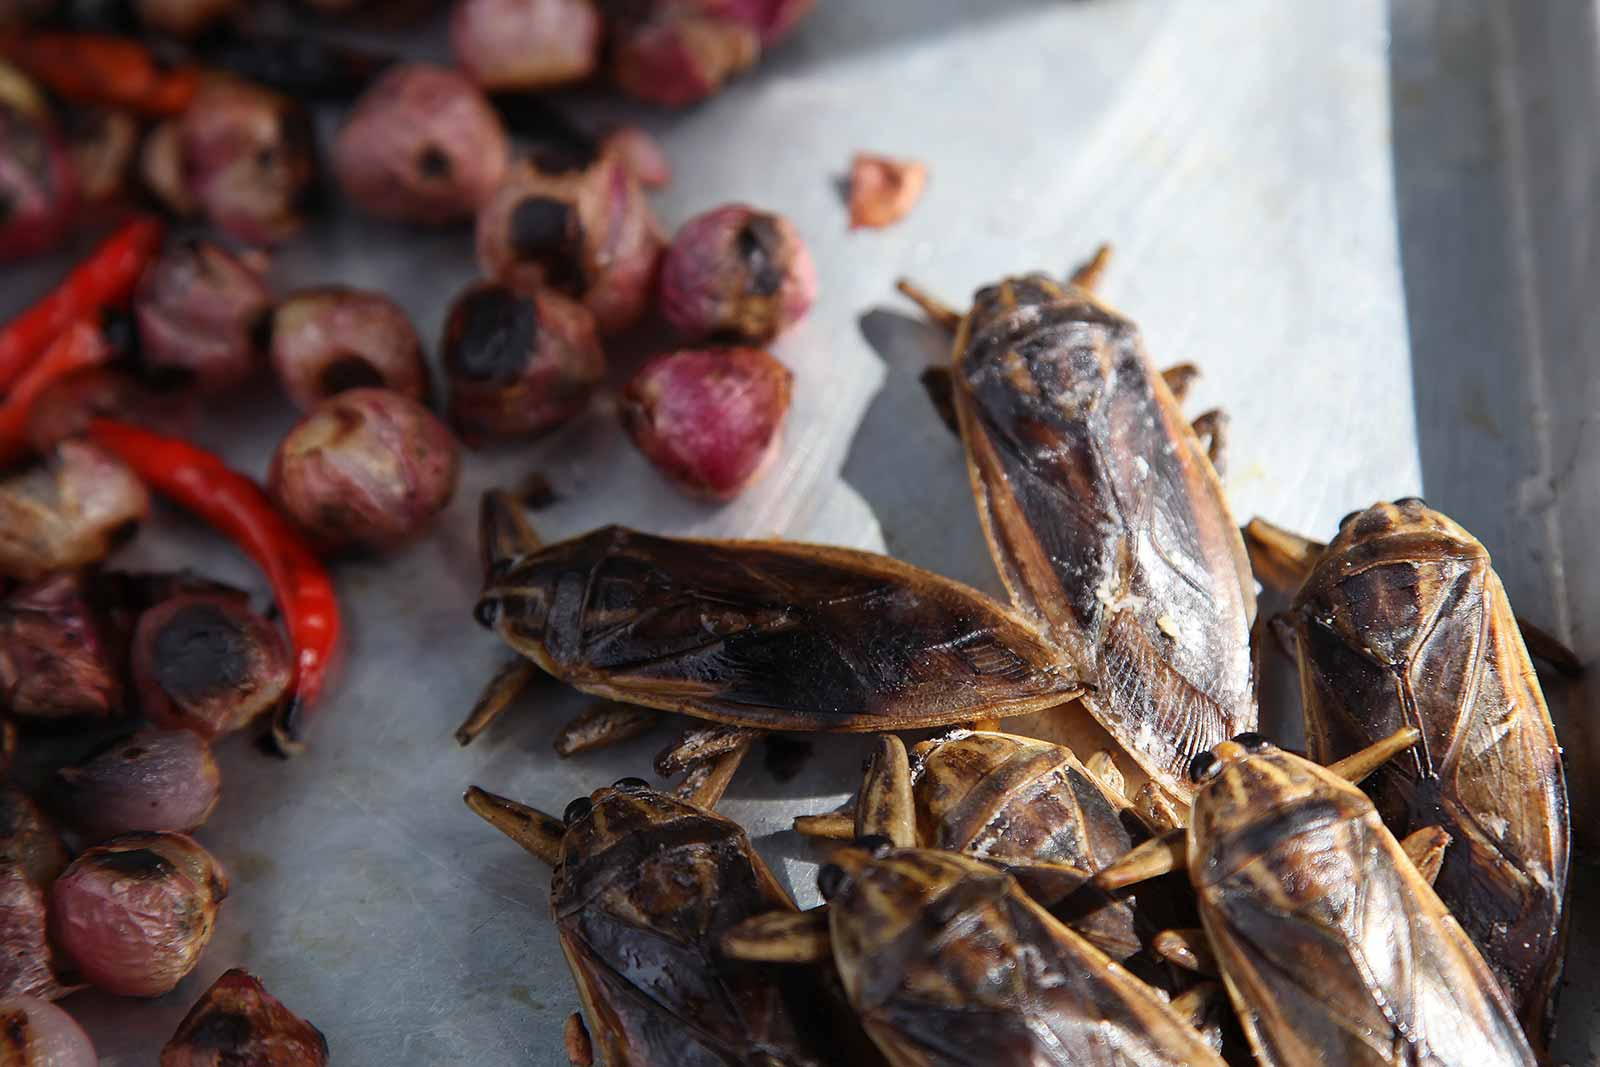 Bugs at a market in Laos.